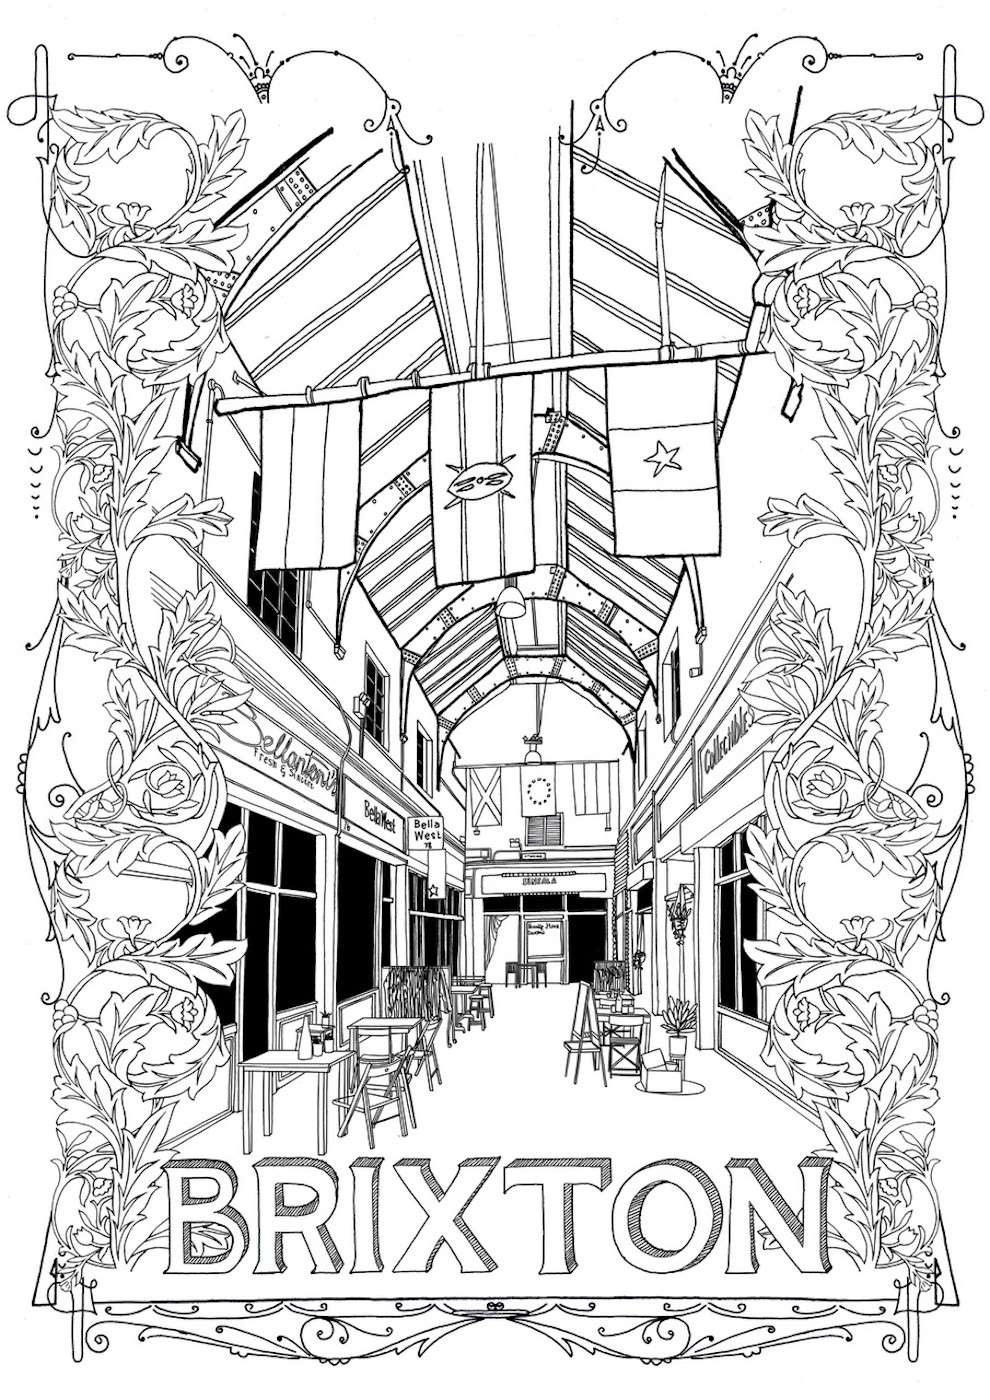 Jitesh Patel, Line illustration of Brixton market